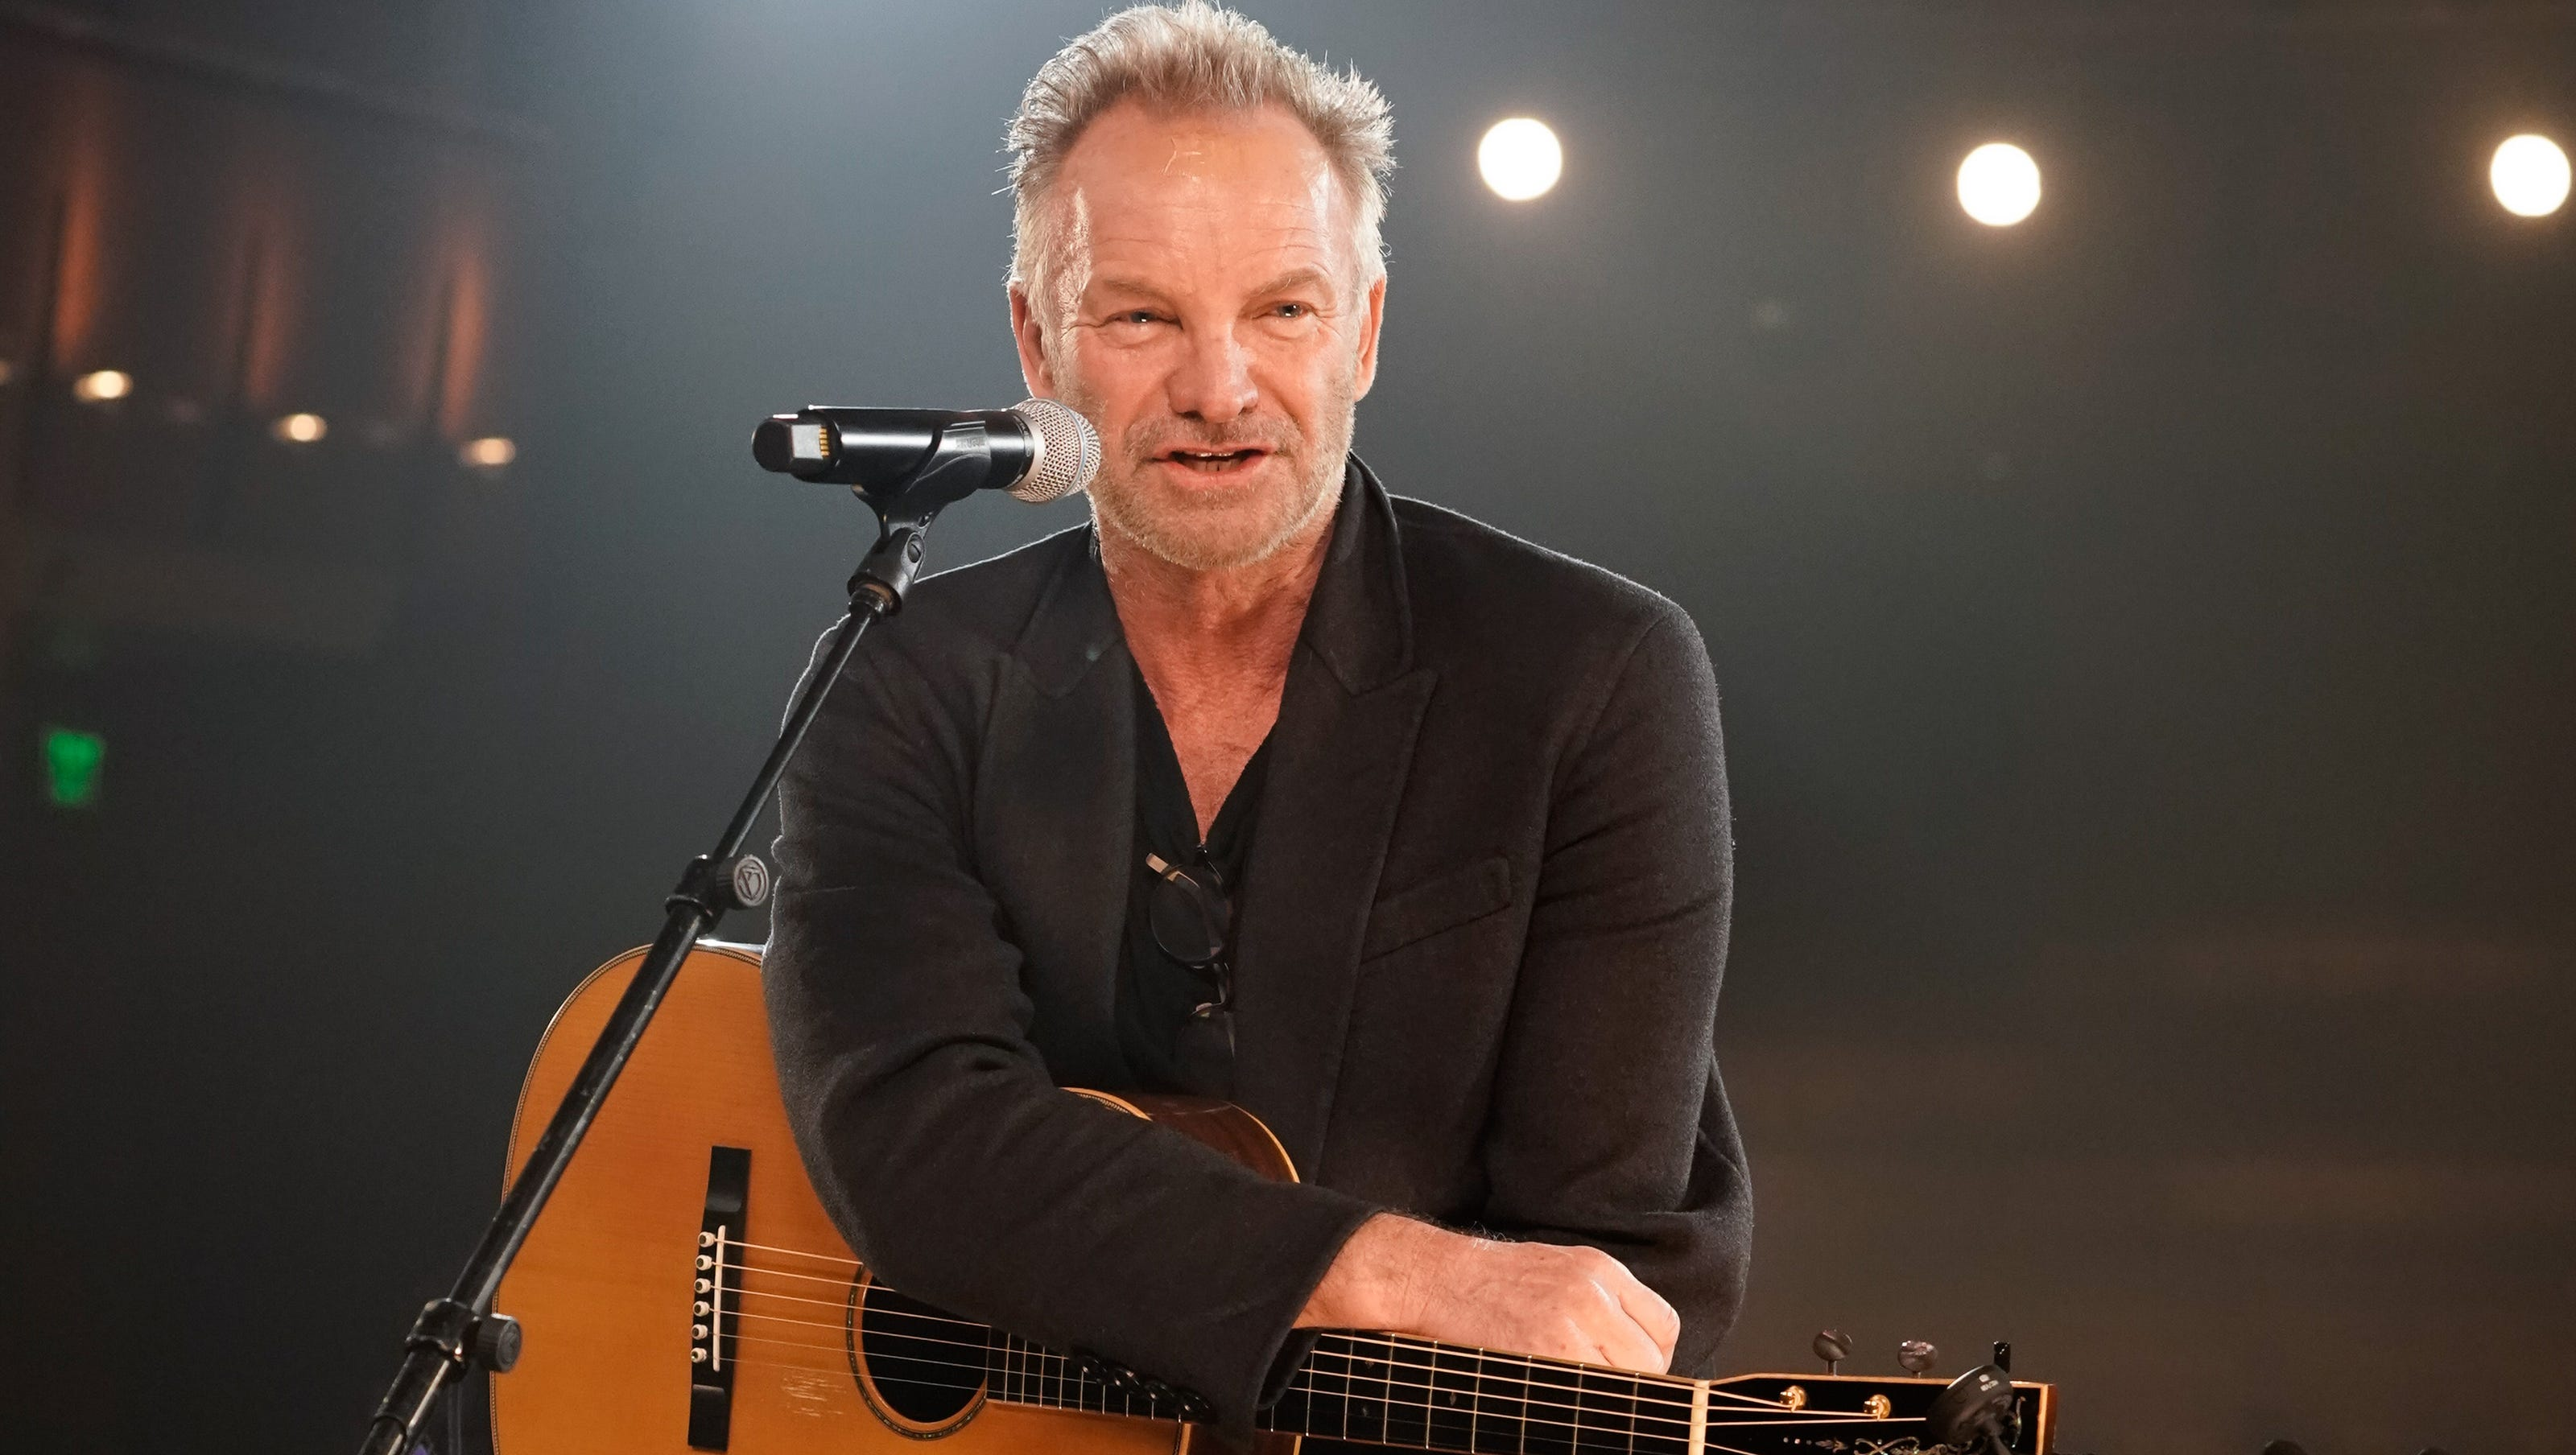 Sting heading to Las Vegas for new residency 'Sting: My Songs'